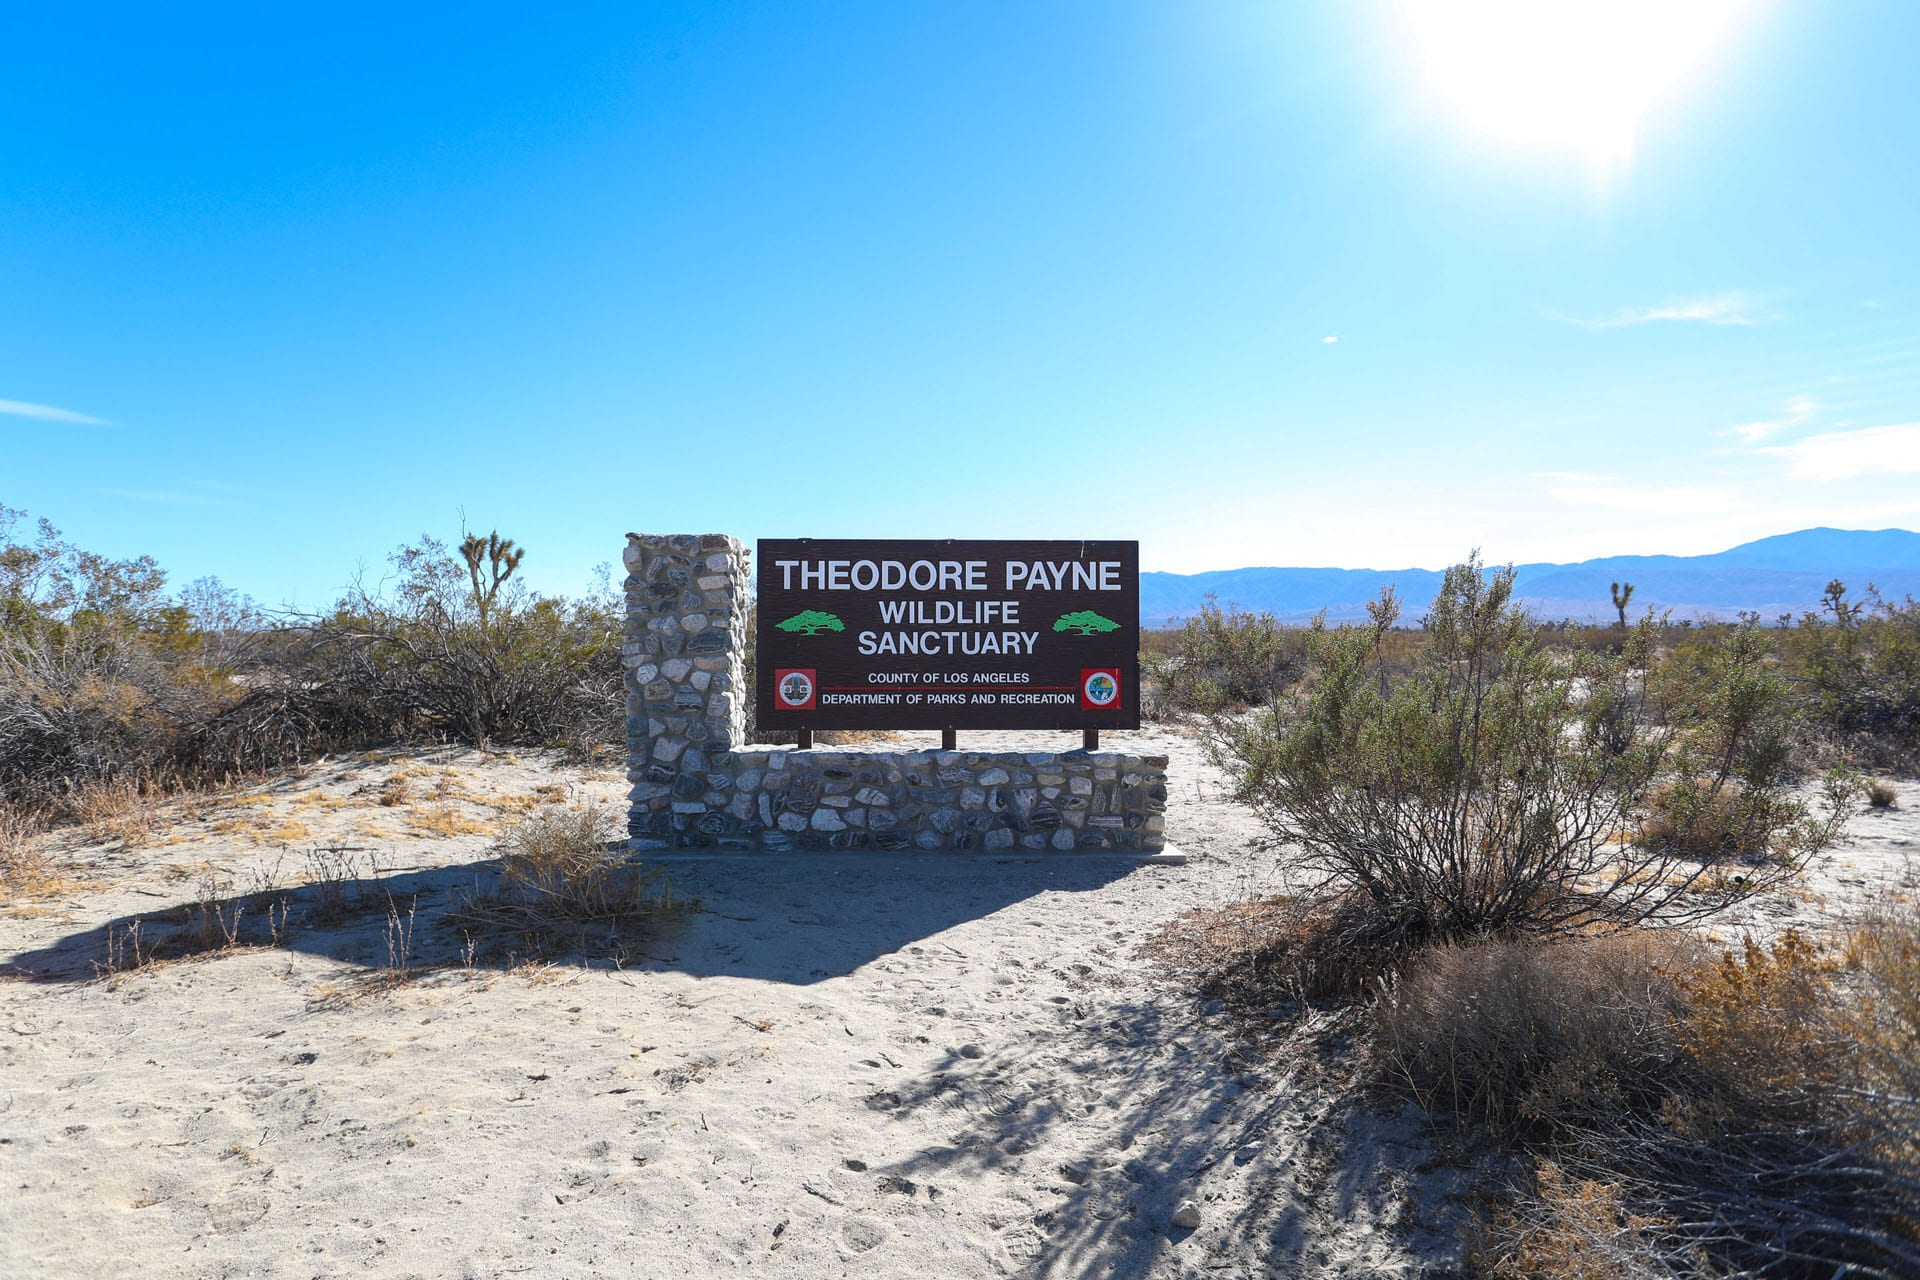 Theodore Payne Wildlife Sanctuary sign viewed at some distance